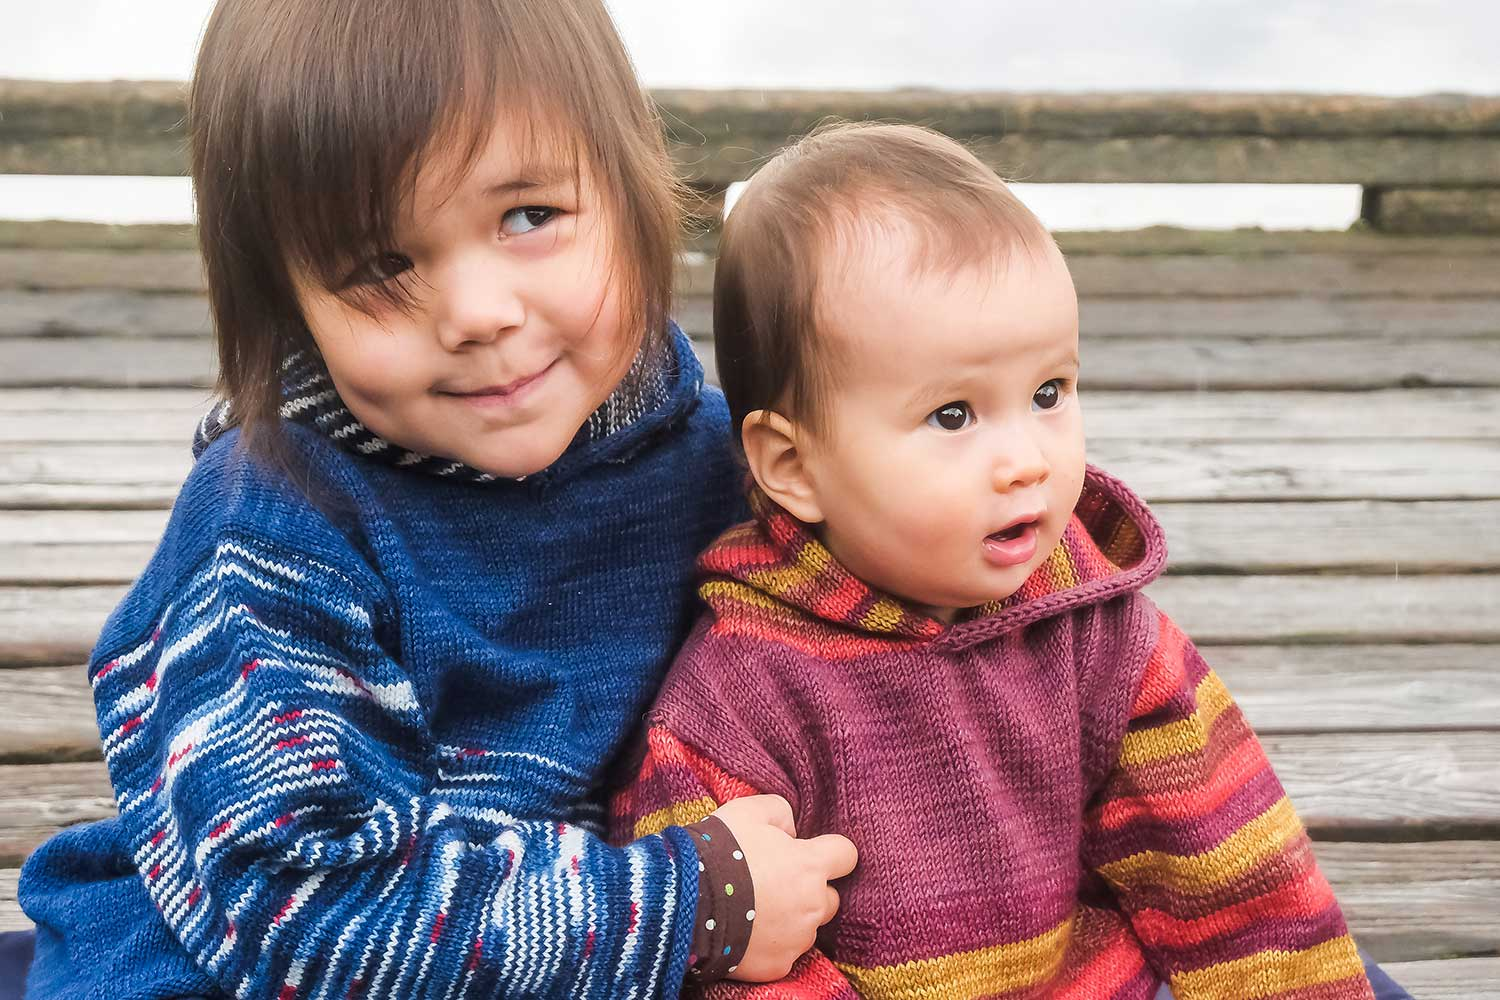 Child and baby seated together on wooden dock wearing handknit hoodies with stripes sleeves and hoods.